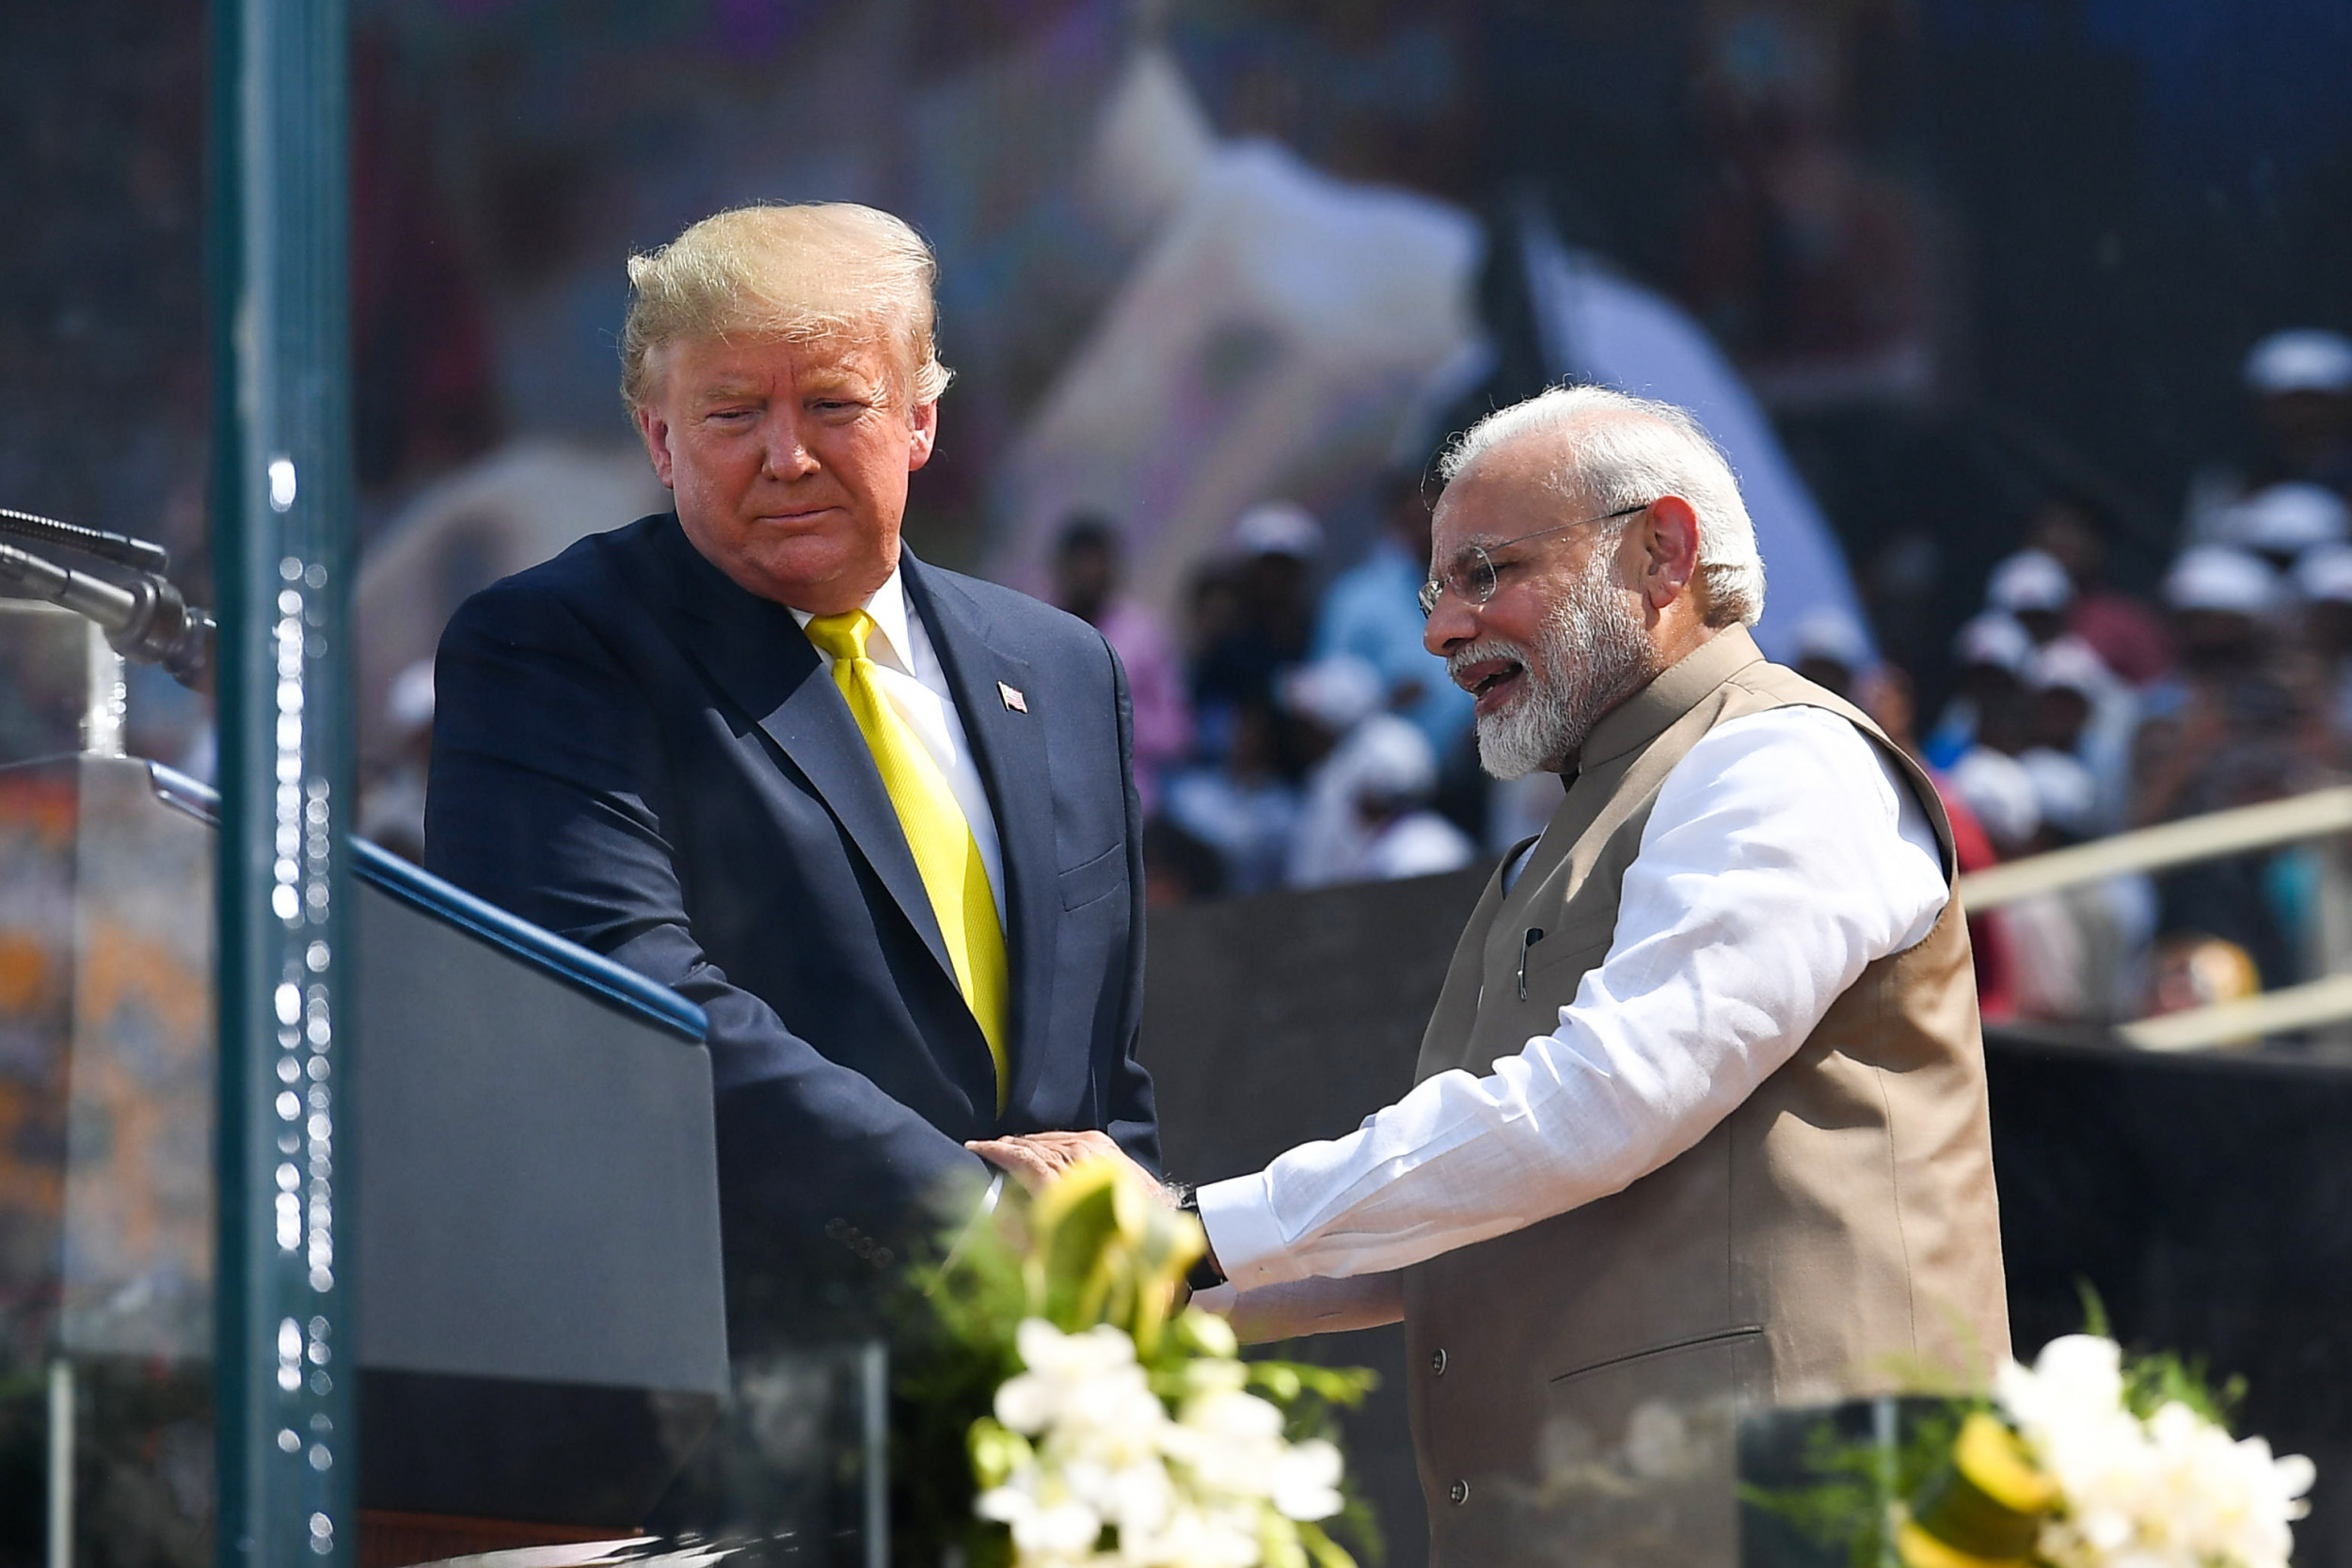 """Trump praises """"very tough"""" Modi during India rally, says they'll deepen military ties amid fight against """"radical Islamic terrorism"""""""